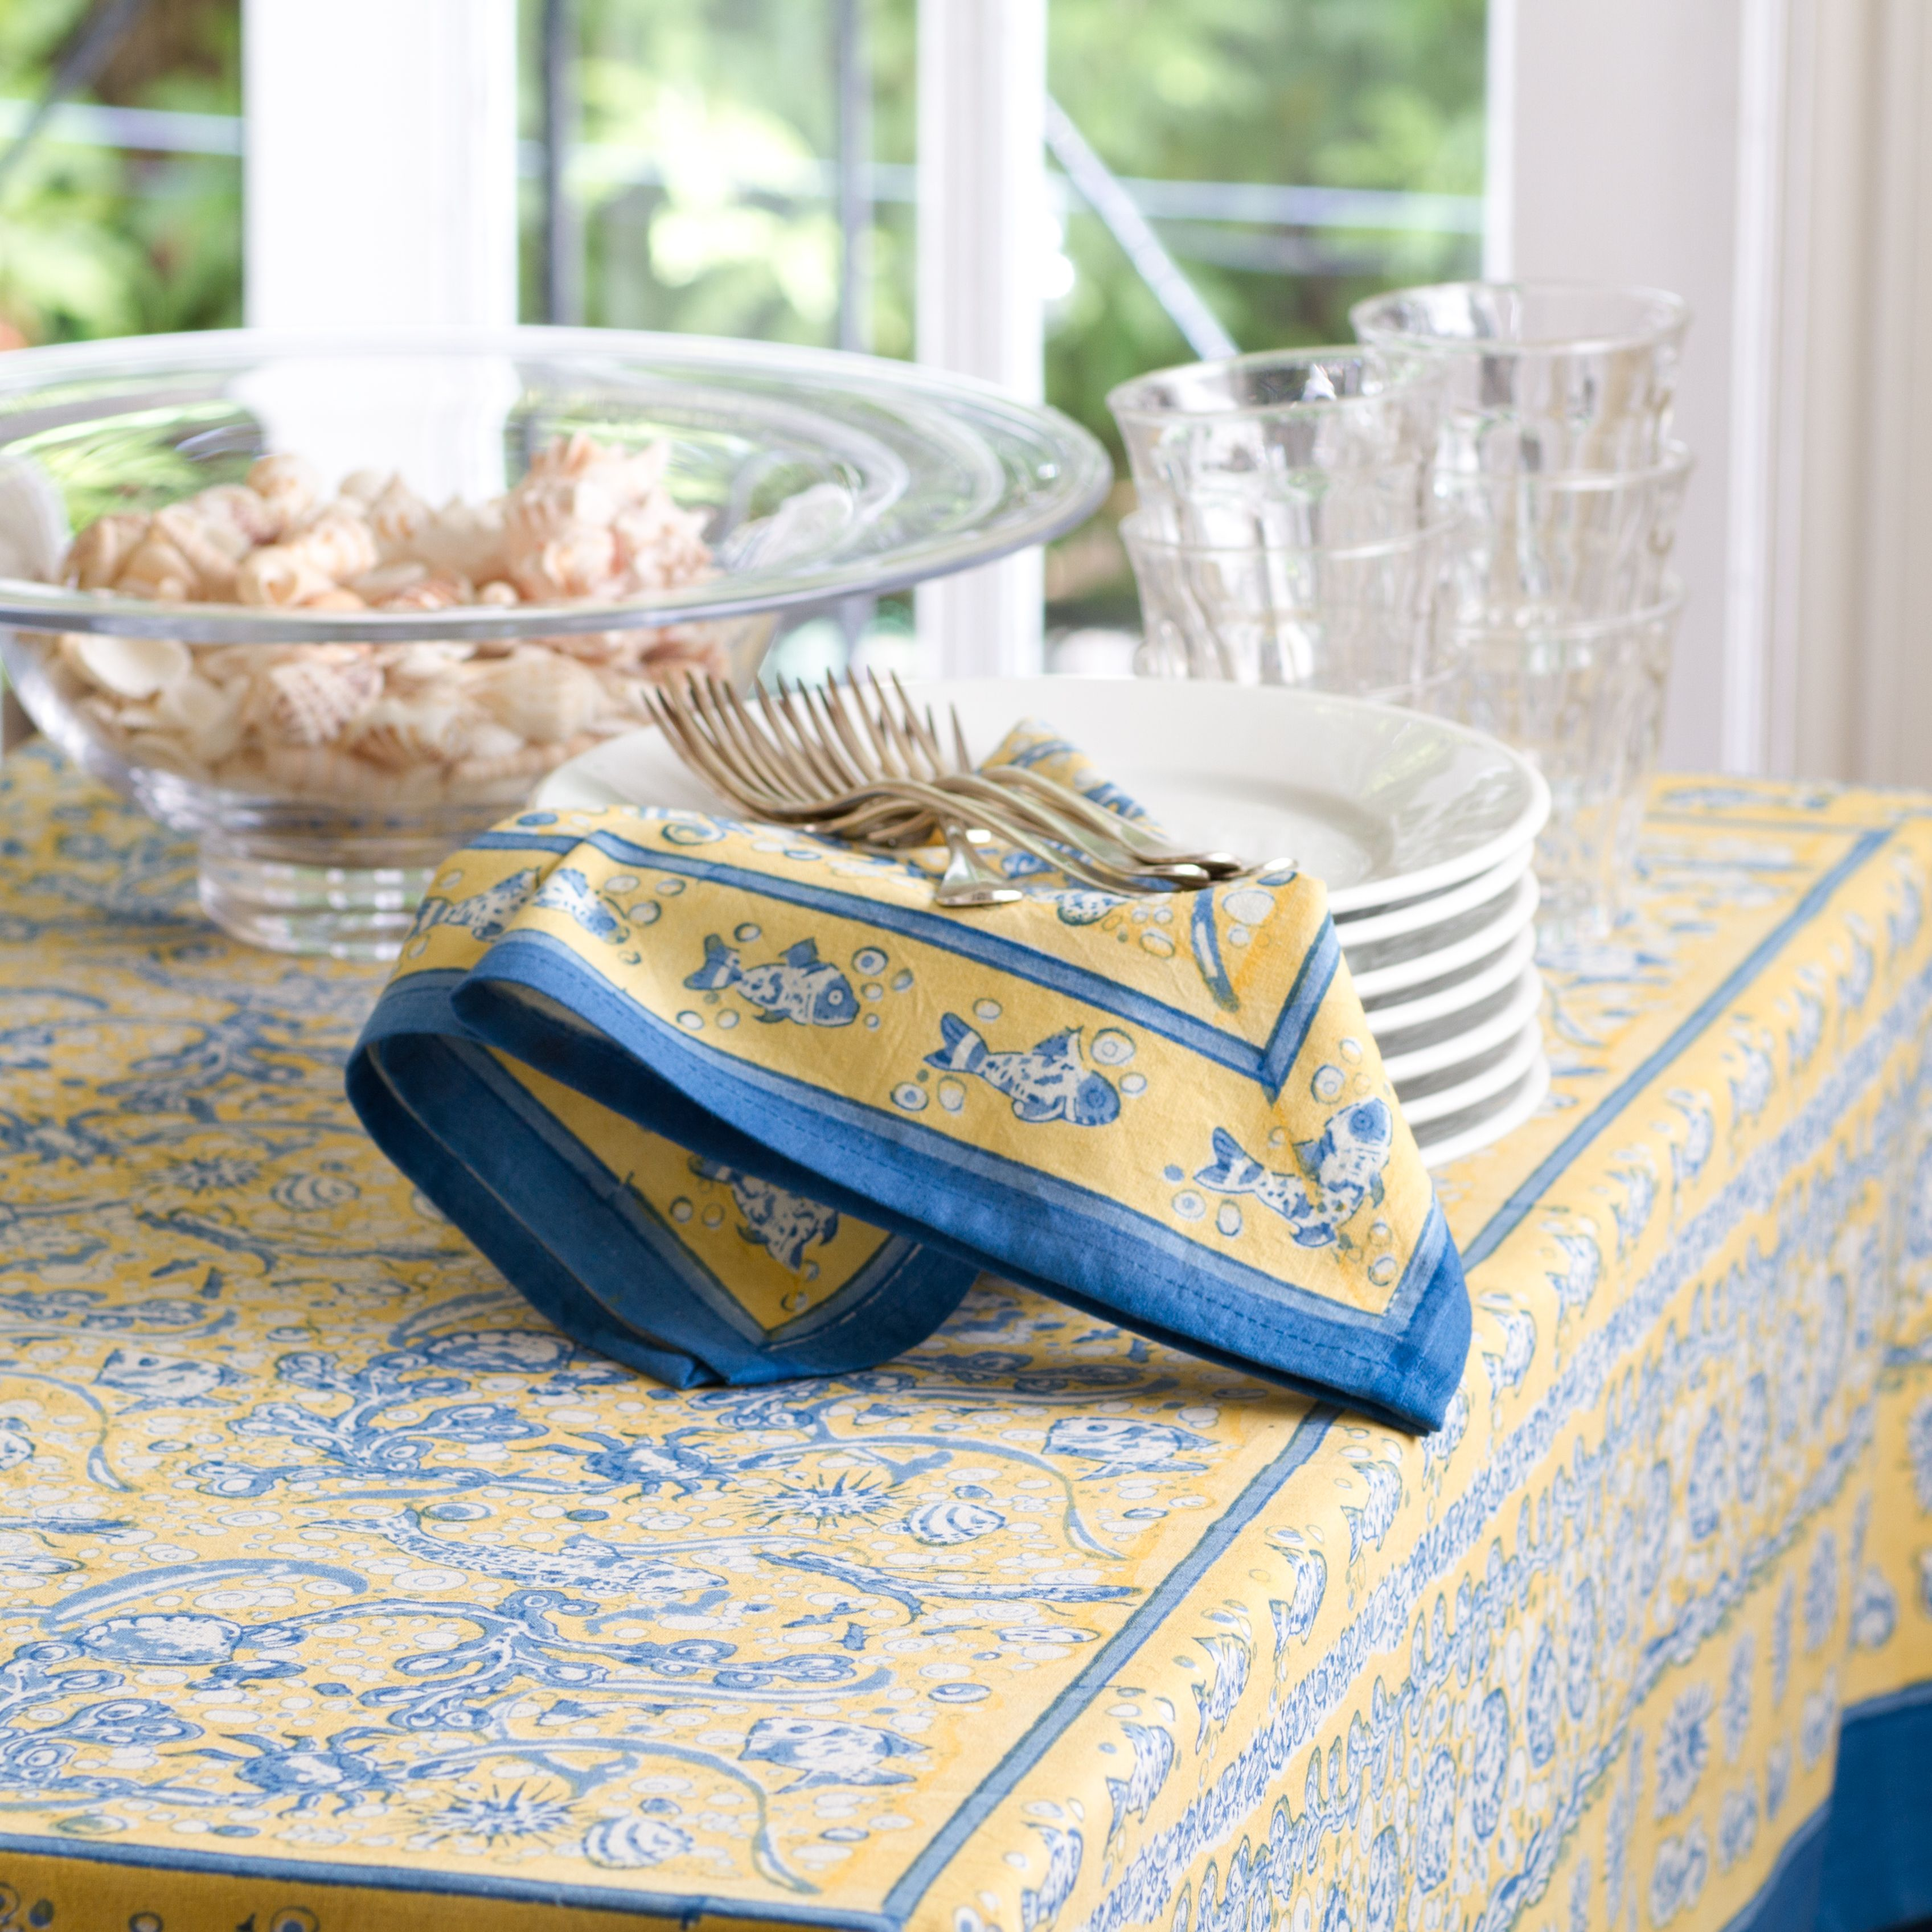 New La Mer Collection Tablecloths Napkins Placemats Runners Aprons Tea Towels French Tablecloths Table Cloth Tea Towels